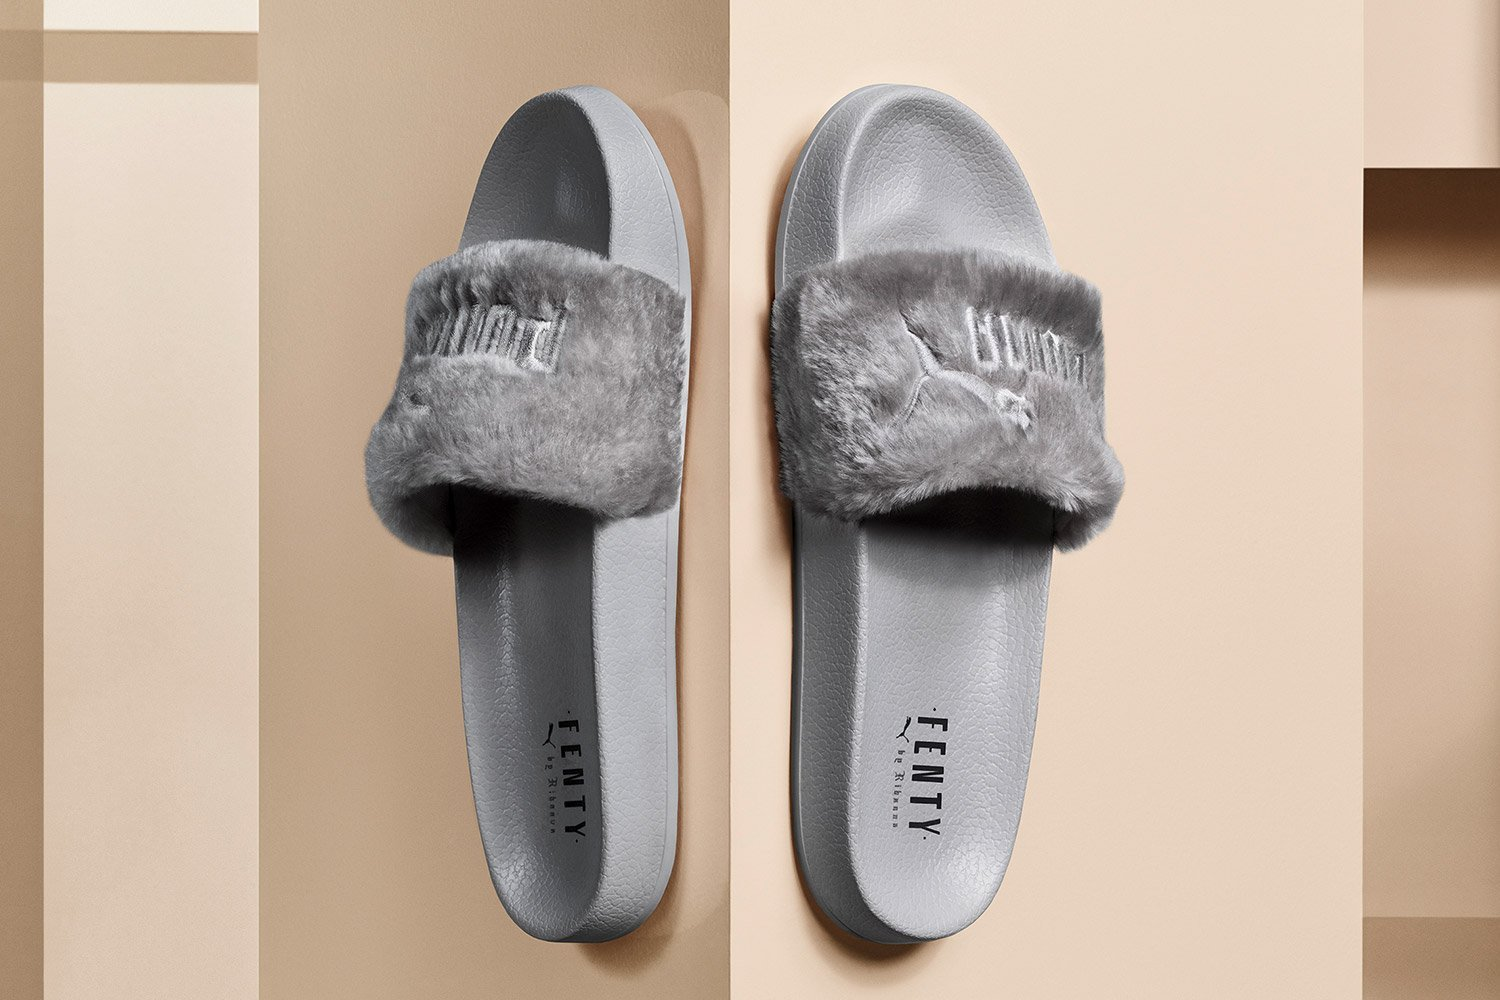 fad4687f1796 Buy FENTY PUMA by Rihanna Collection - Fur Slide in Cheap Price on ...